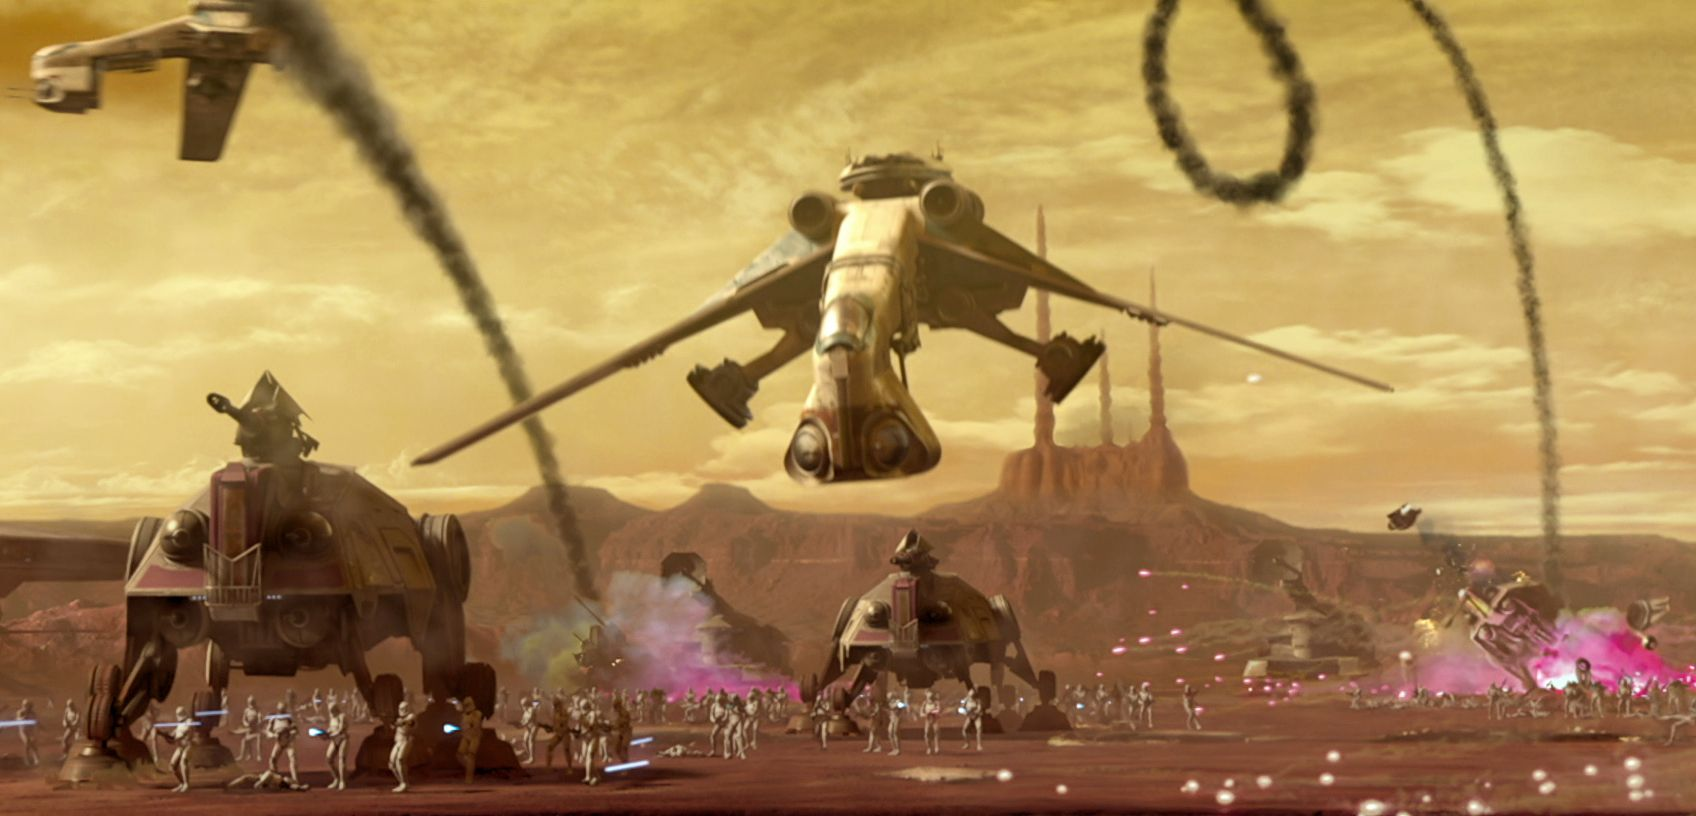 Grand Army Of The Republic Star Wars Pictures Star Wars Images Battle Of Geonosis